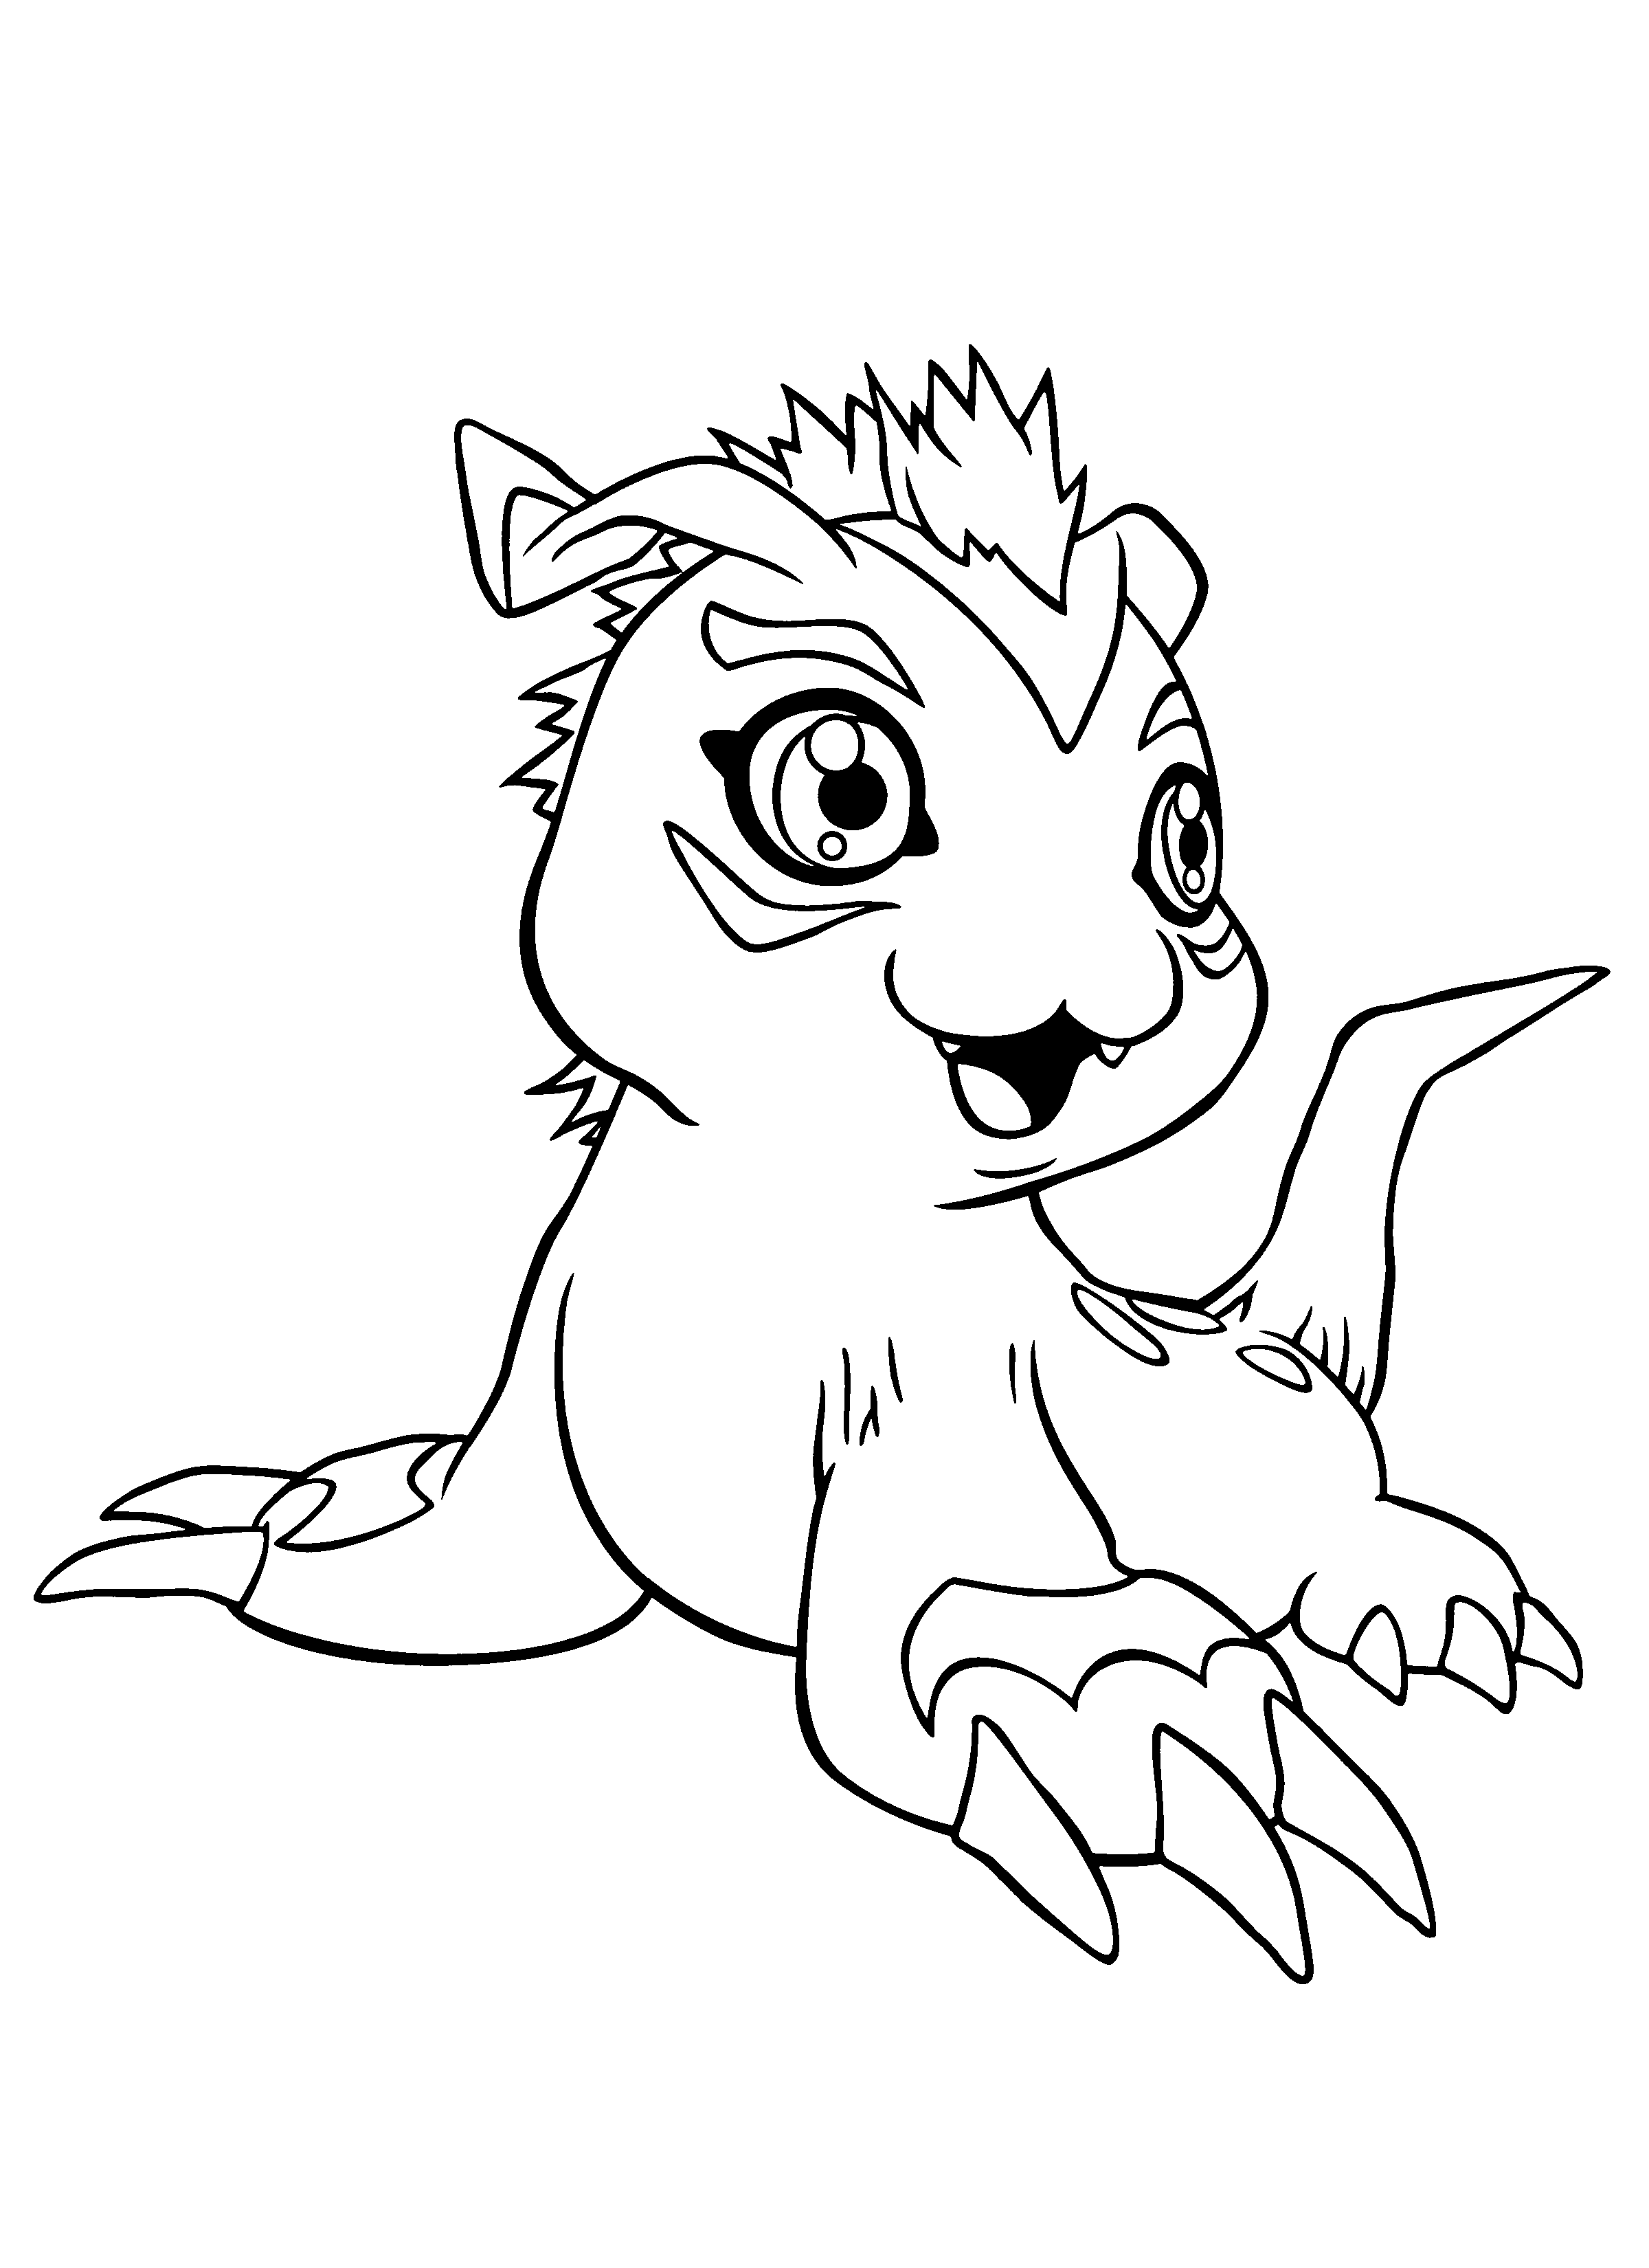 digimon coloring pages printable free printable digimon coloring pages for kids digimon coloring printable pages